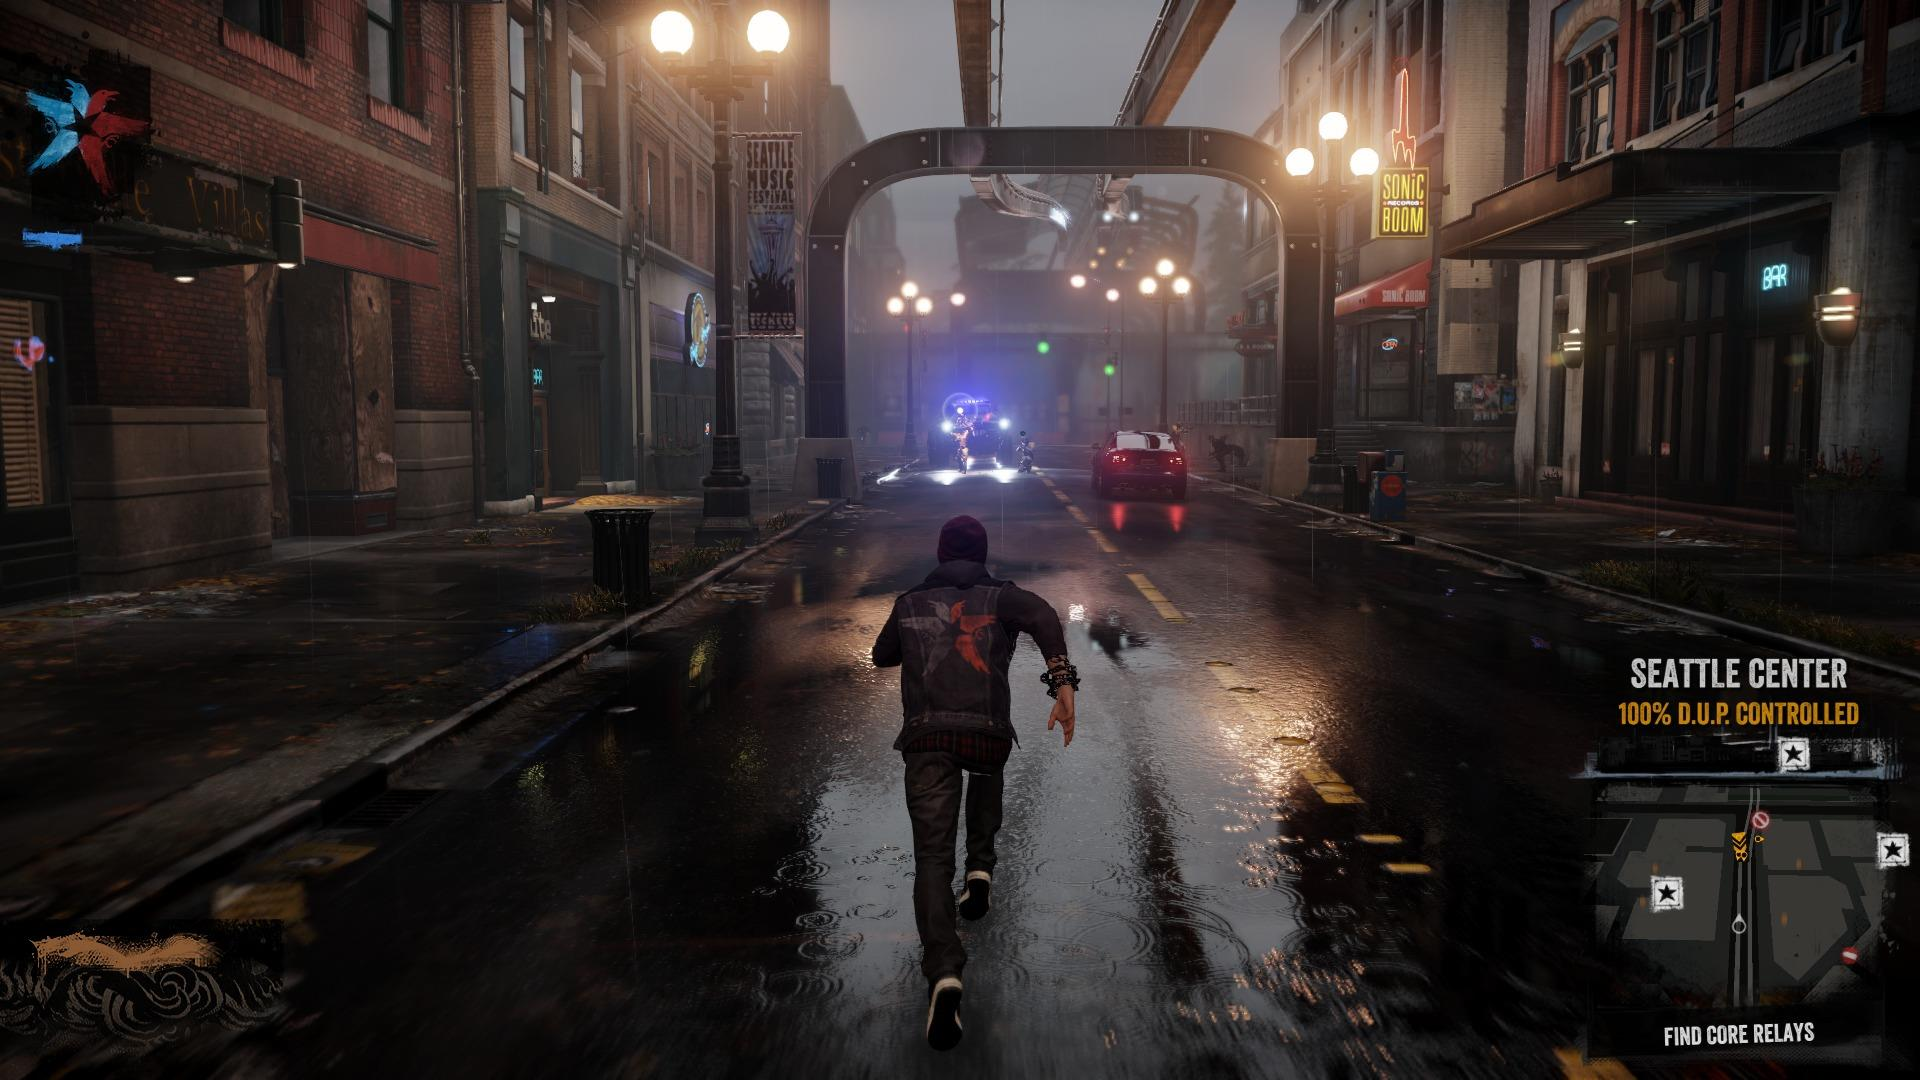 Killzone Shadow Fall Wallpaper 1080p New Infamous Second Son In Game Gif Amp Screenshots Show